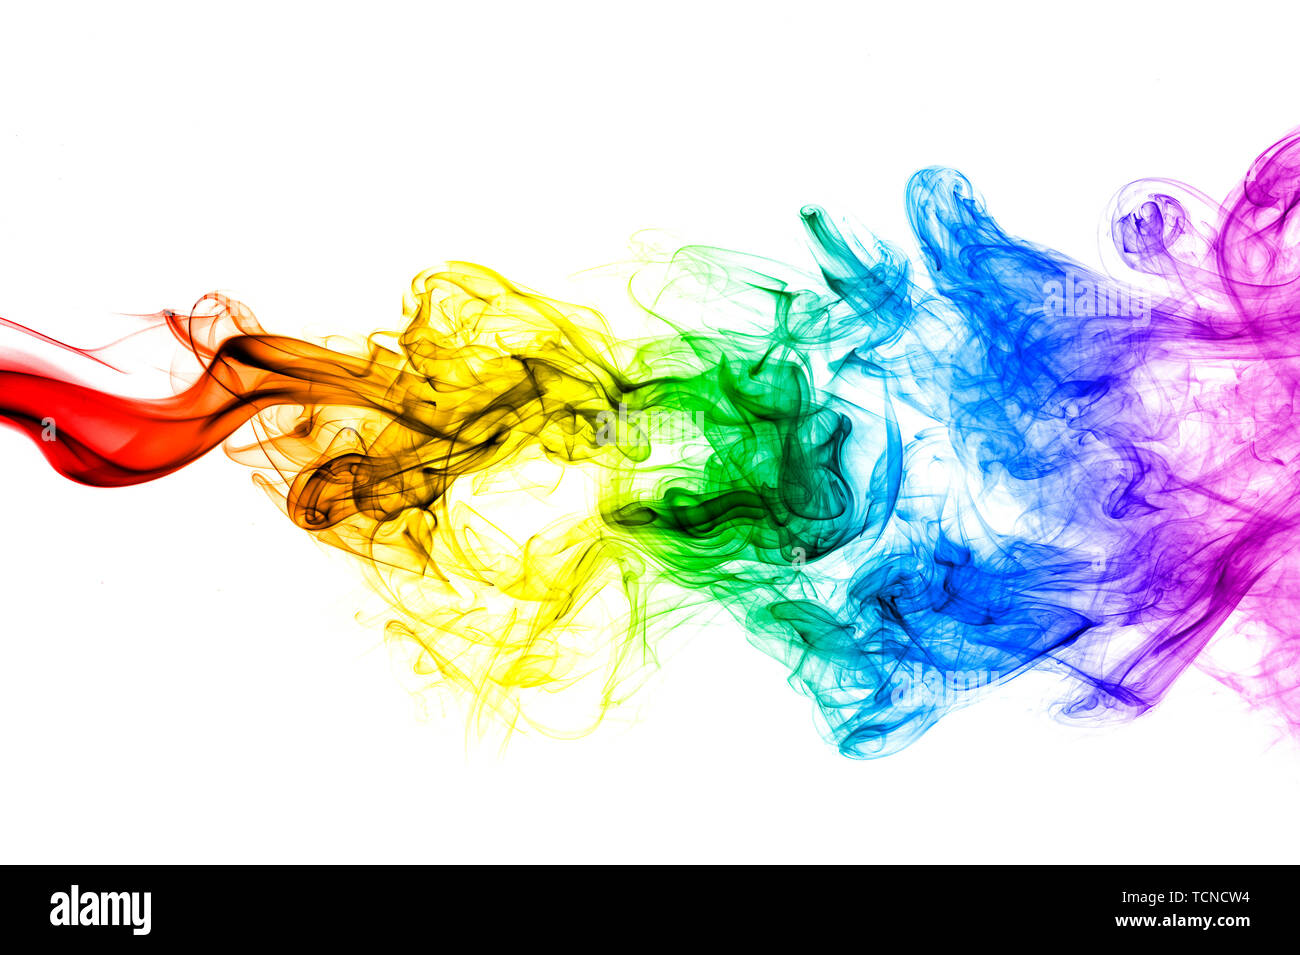 Abstract smoke wave, colorful mystical background - Stock Image